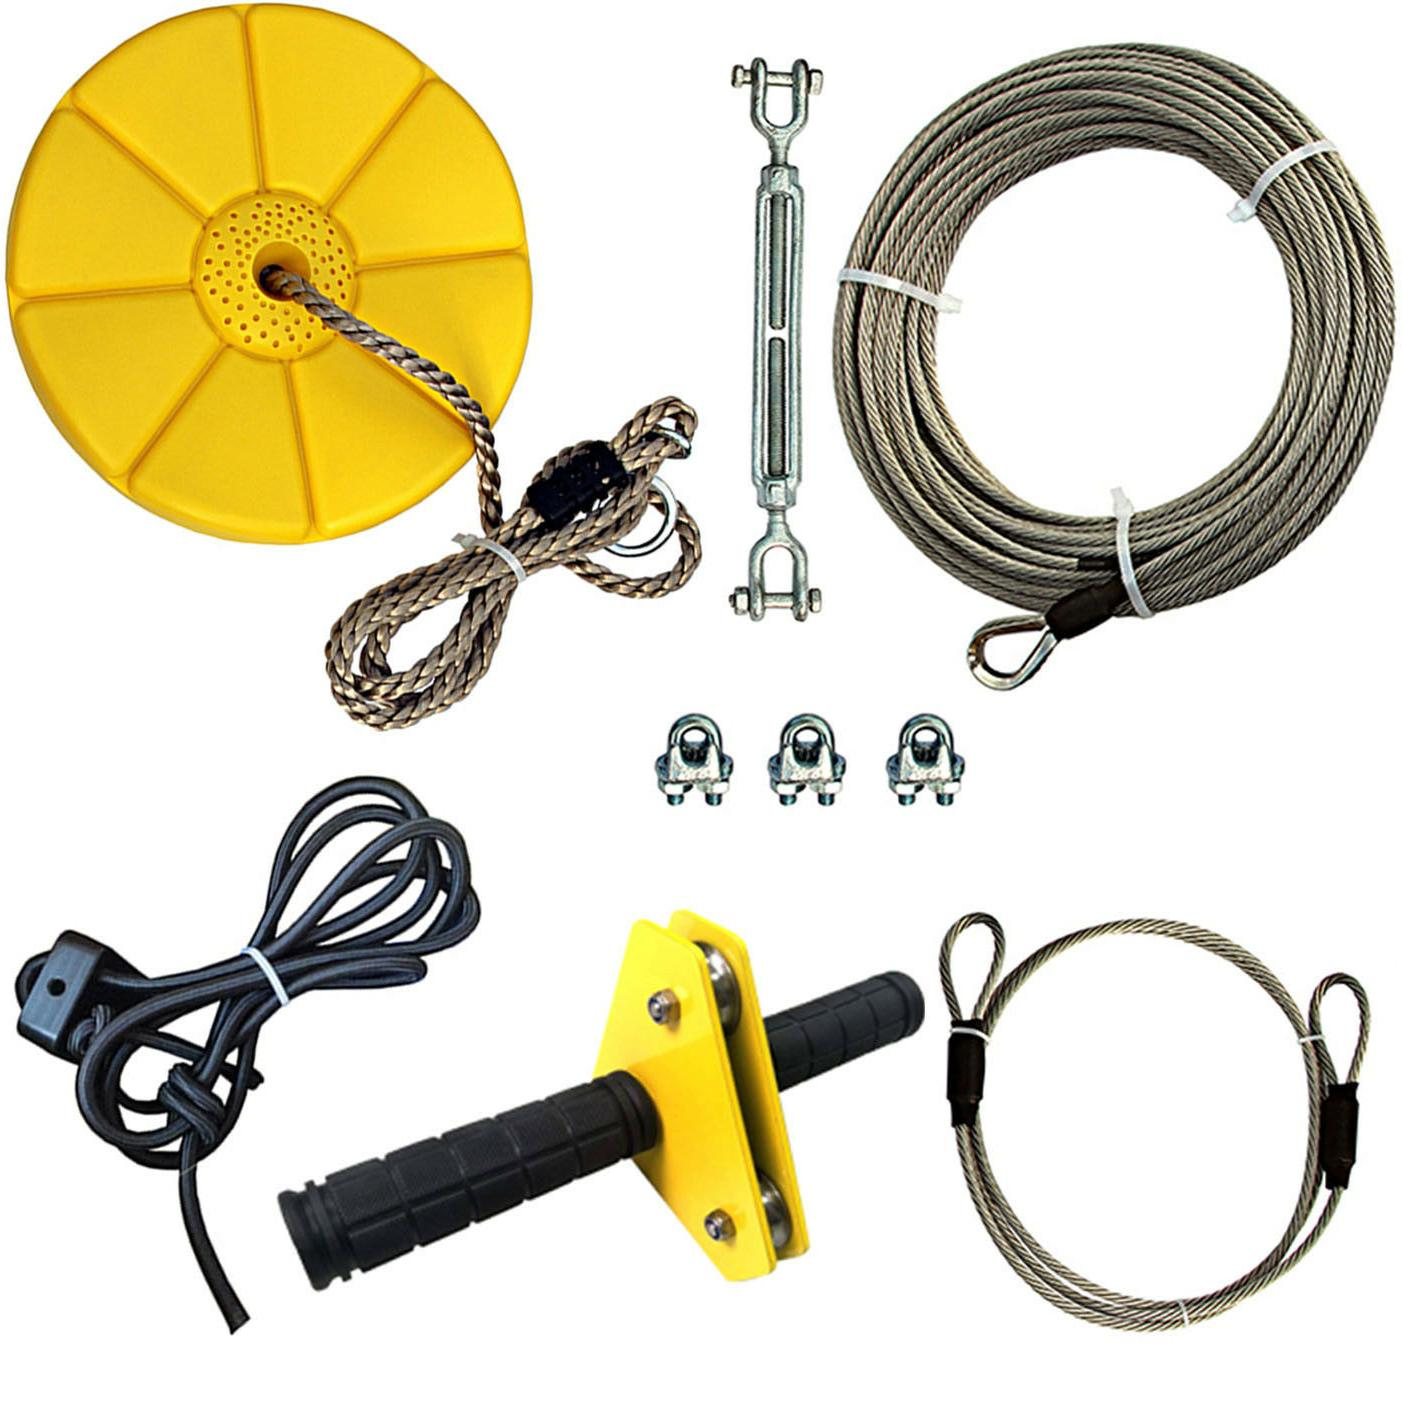 Backyard Zip Line Kits With Steel Cable,Trolley,Bungee Brake